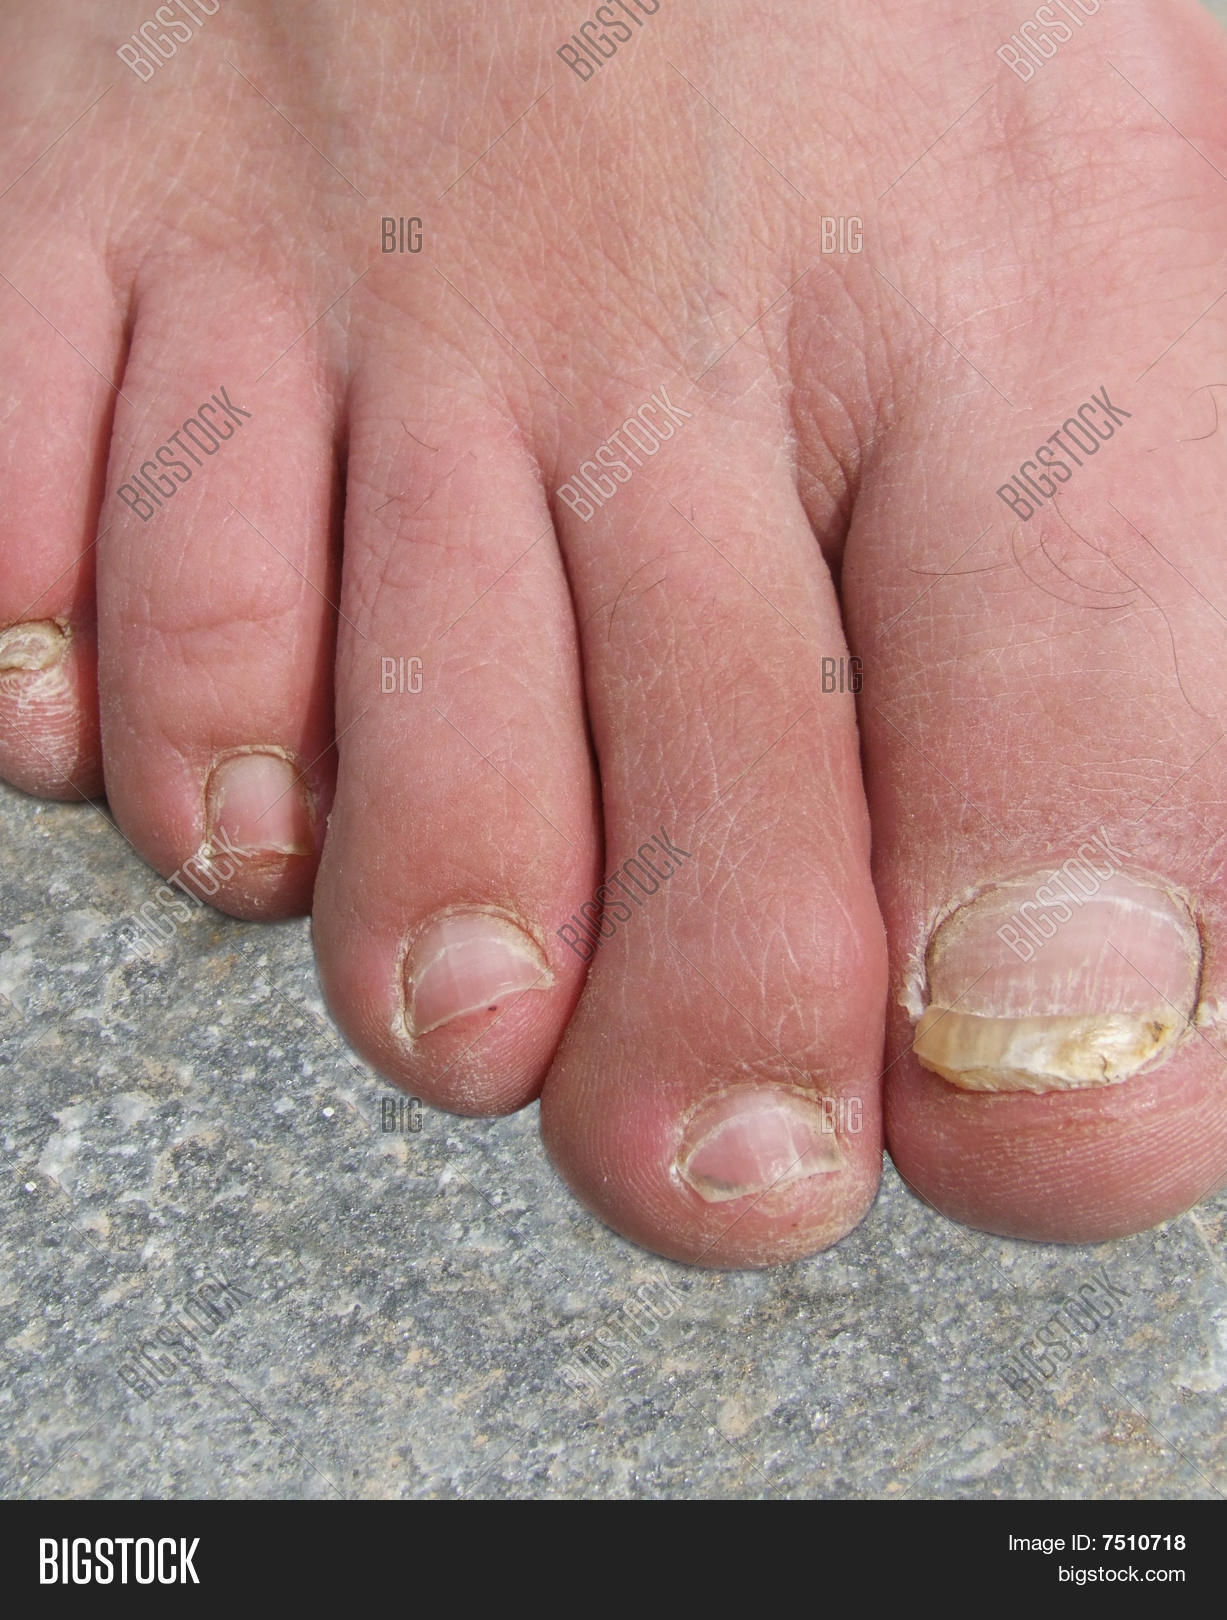 Ugly Toenails Image & Photo (Free Trial) | Bigstock